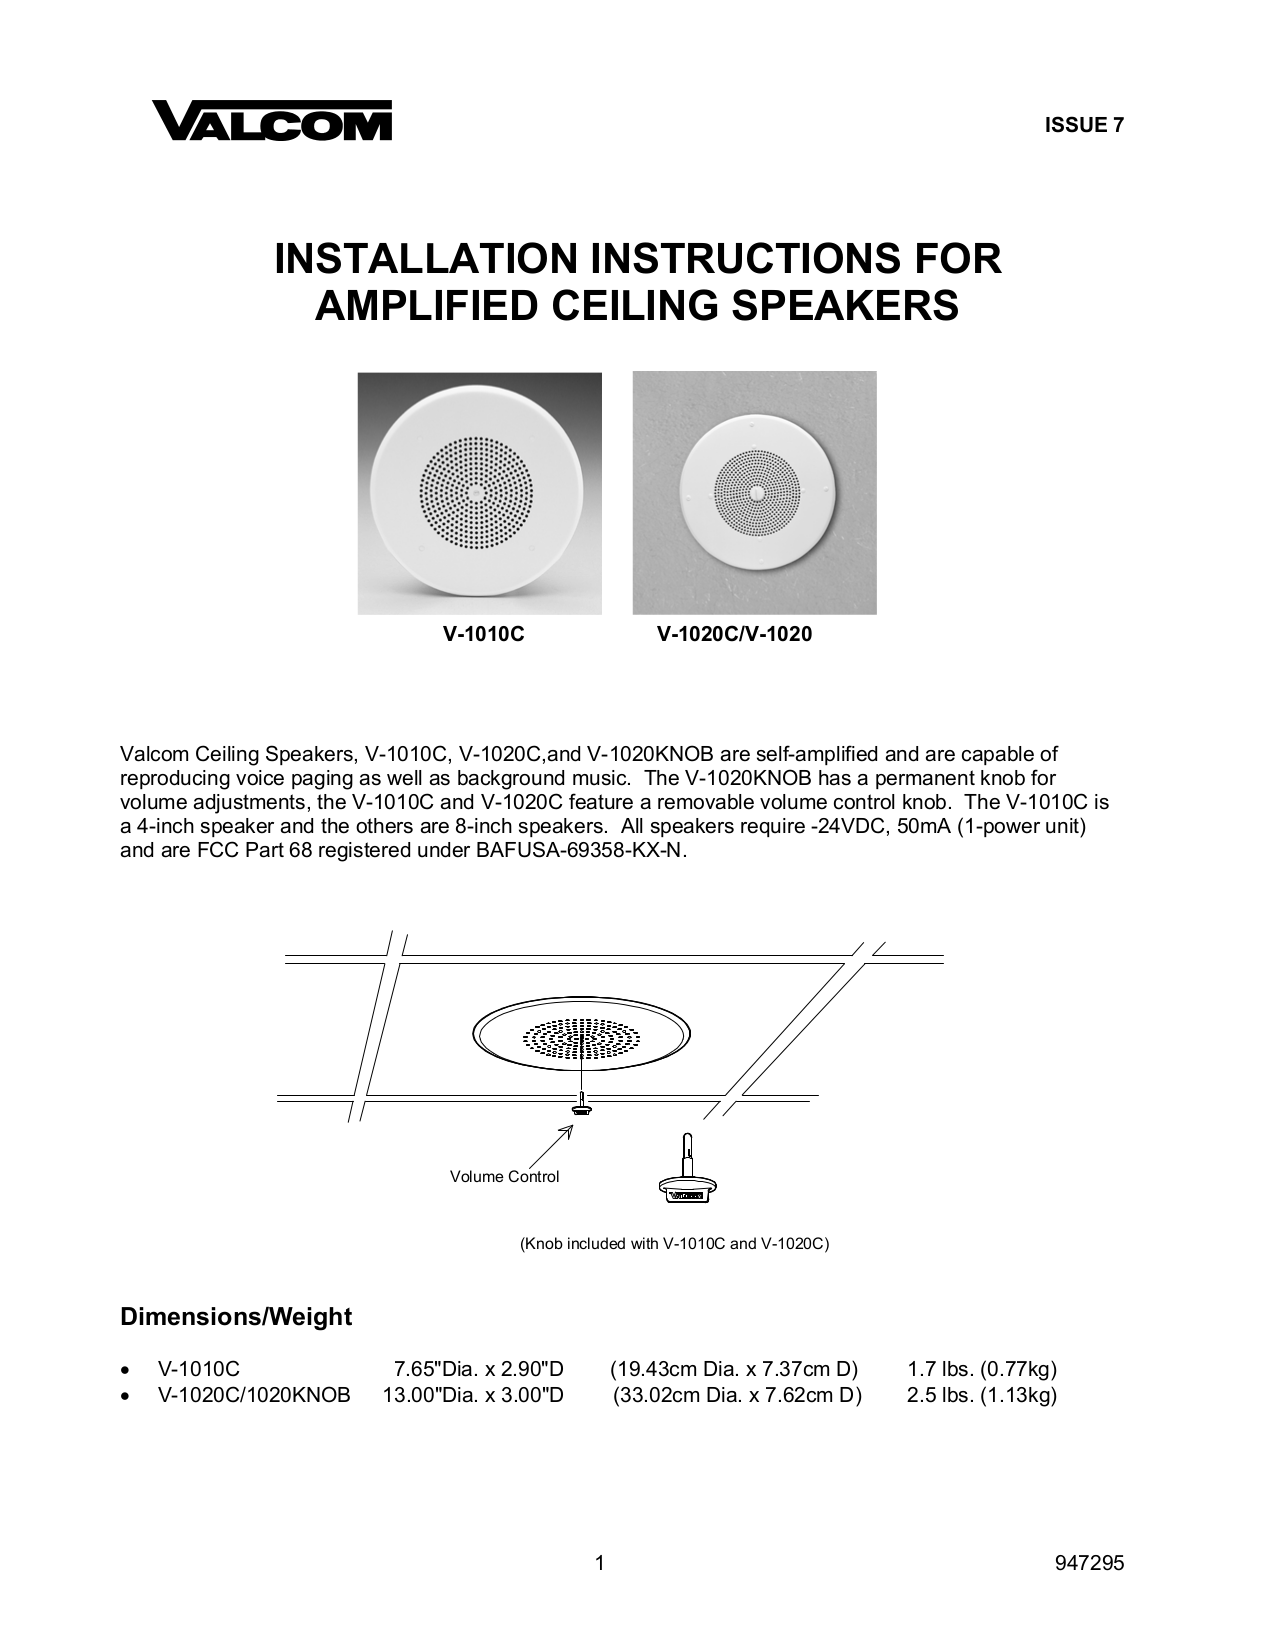 amplifiedceilspkr.pdf 0 download free pdf for valcom v1020c speaker manual valcom v 1020c wiring diagram at cos-gaming.co